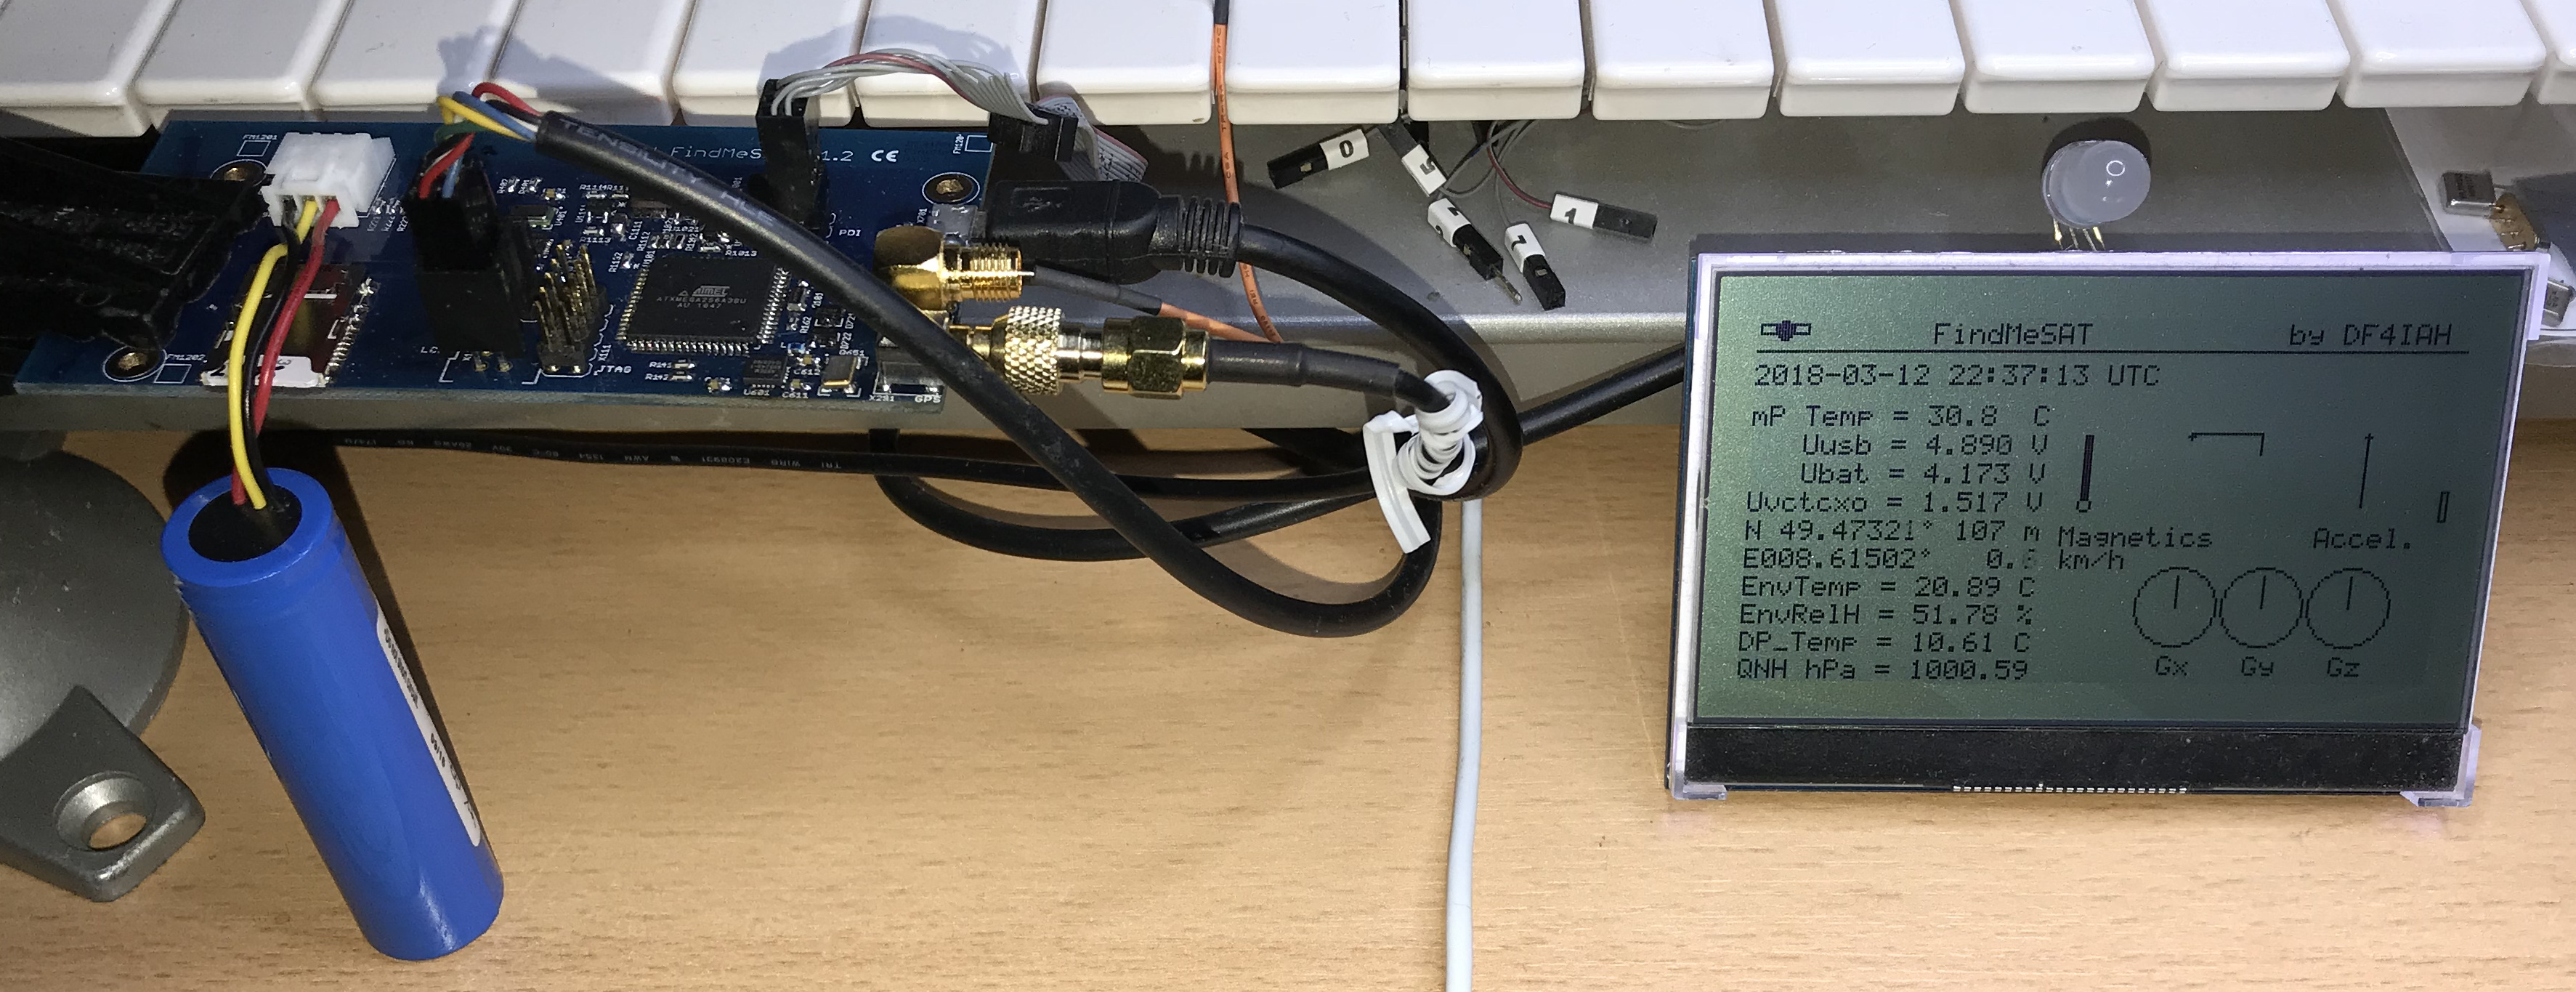 FindMeSAT working together with Smart-LCD